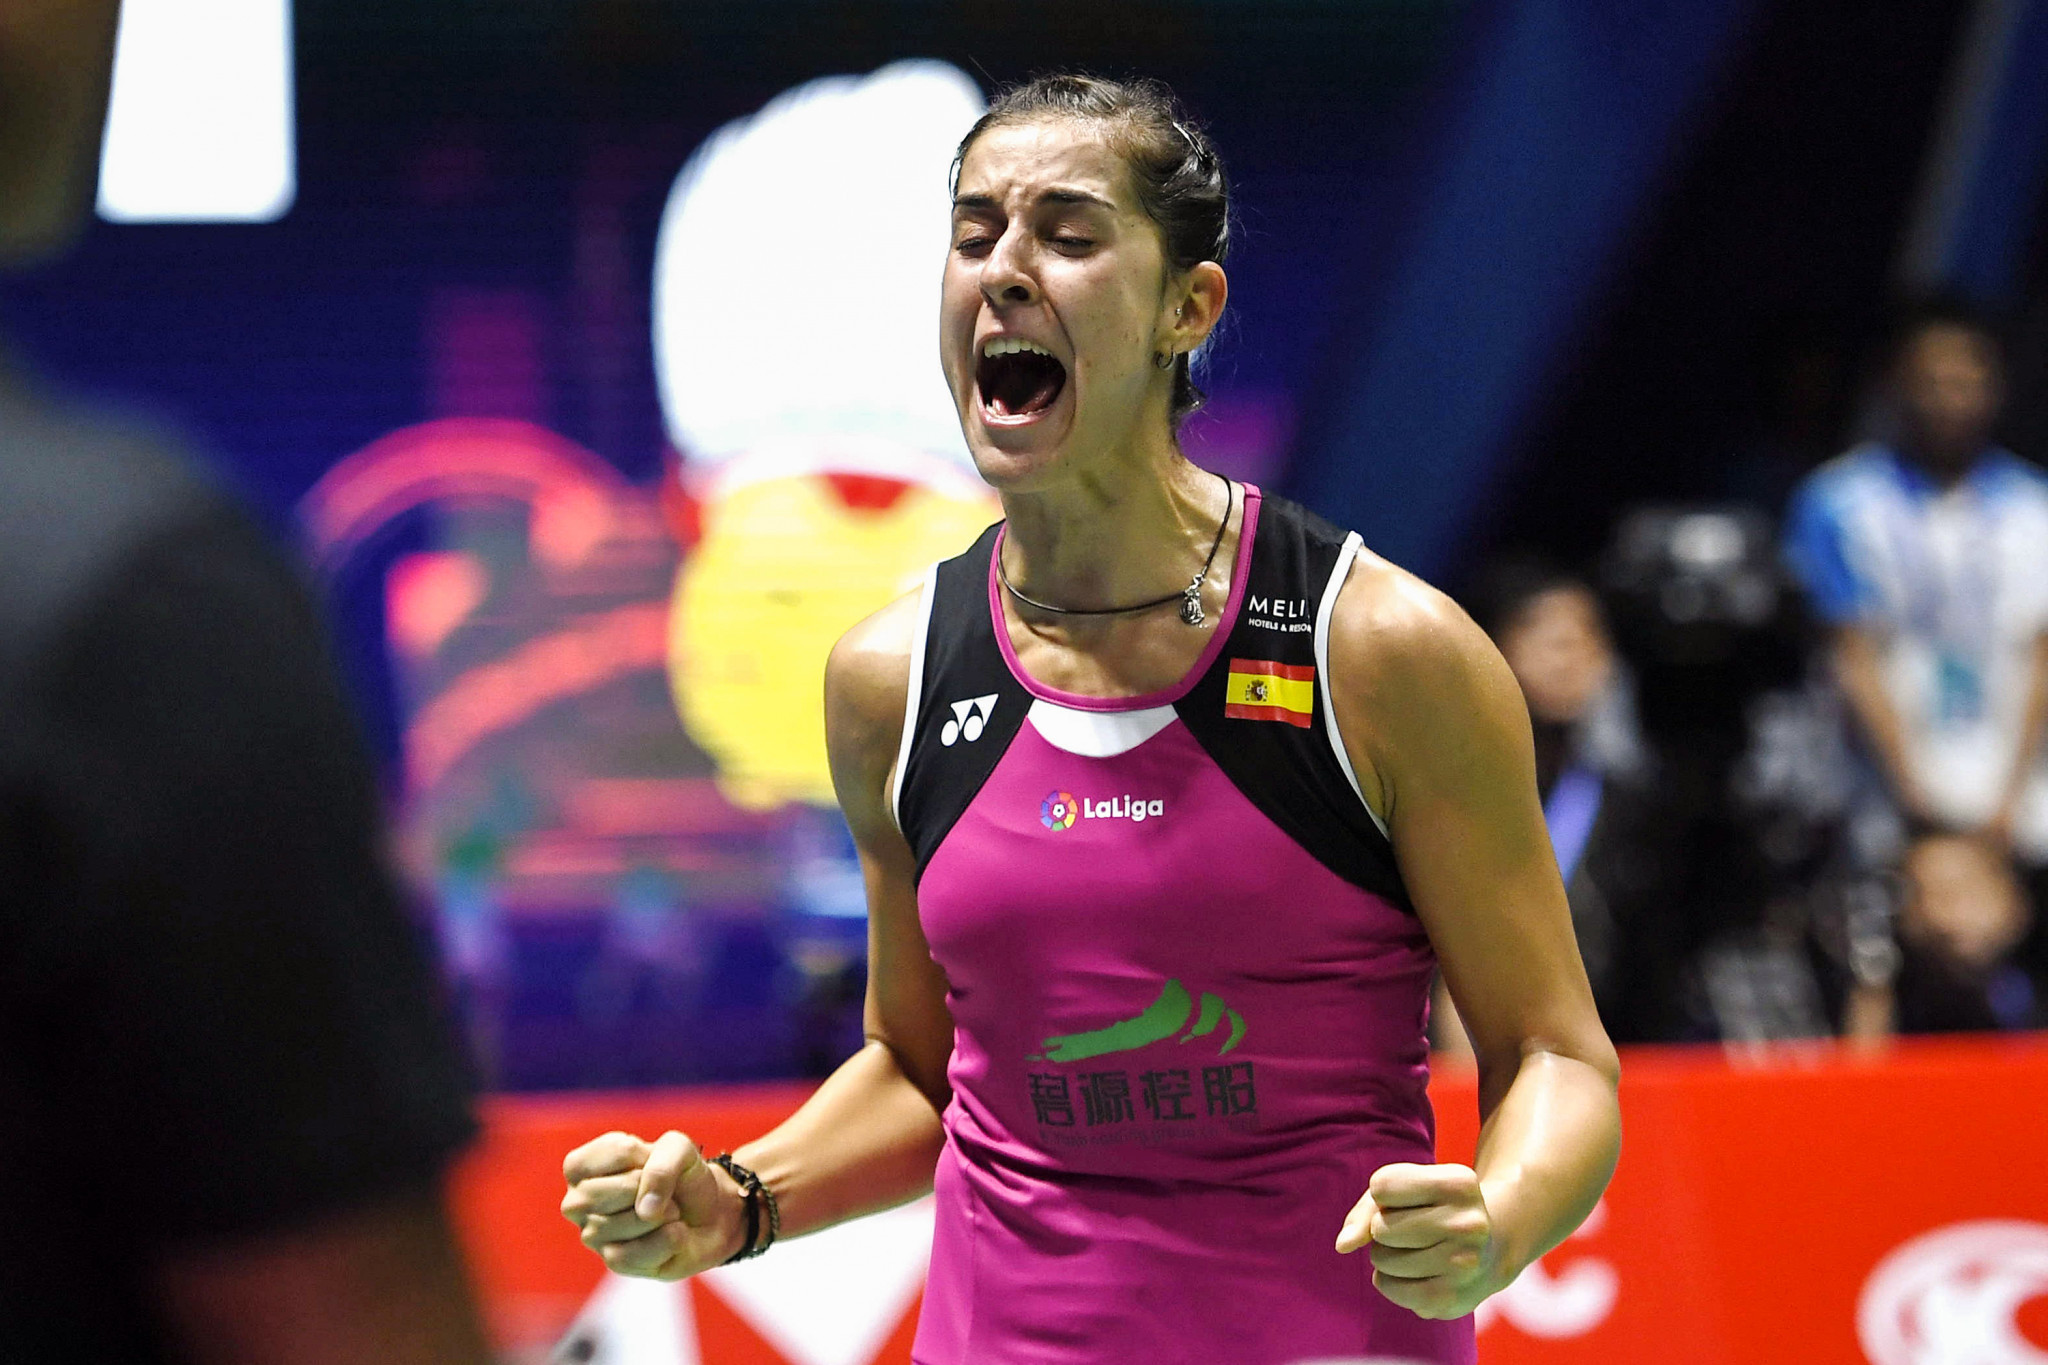 Carolina Marin will look to continue her remarkable injury comeback ©Getty Images